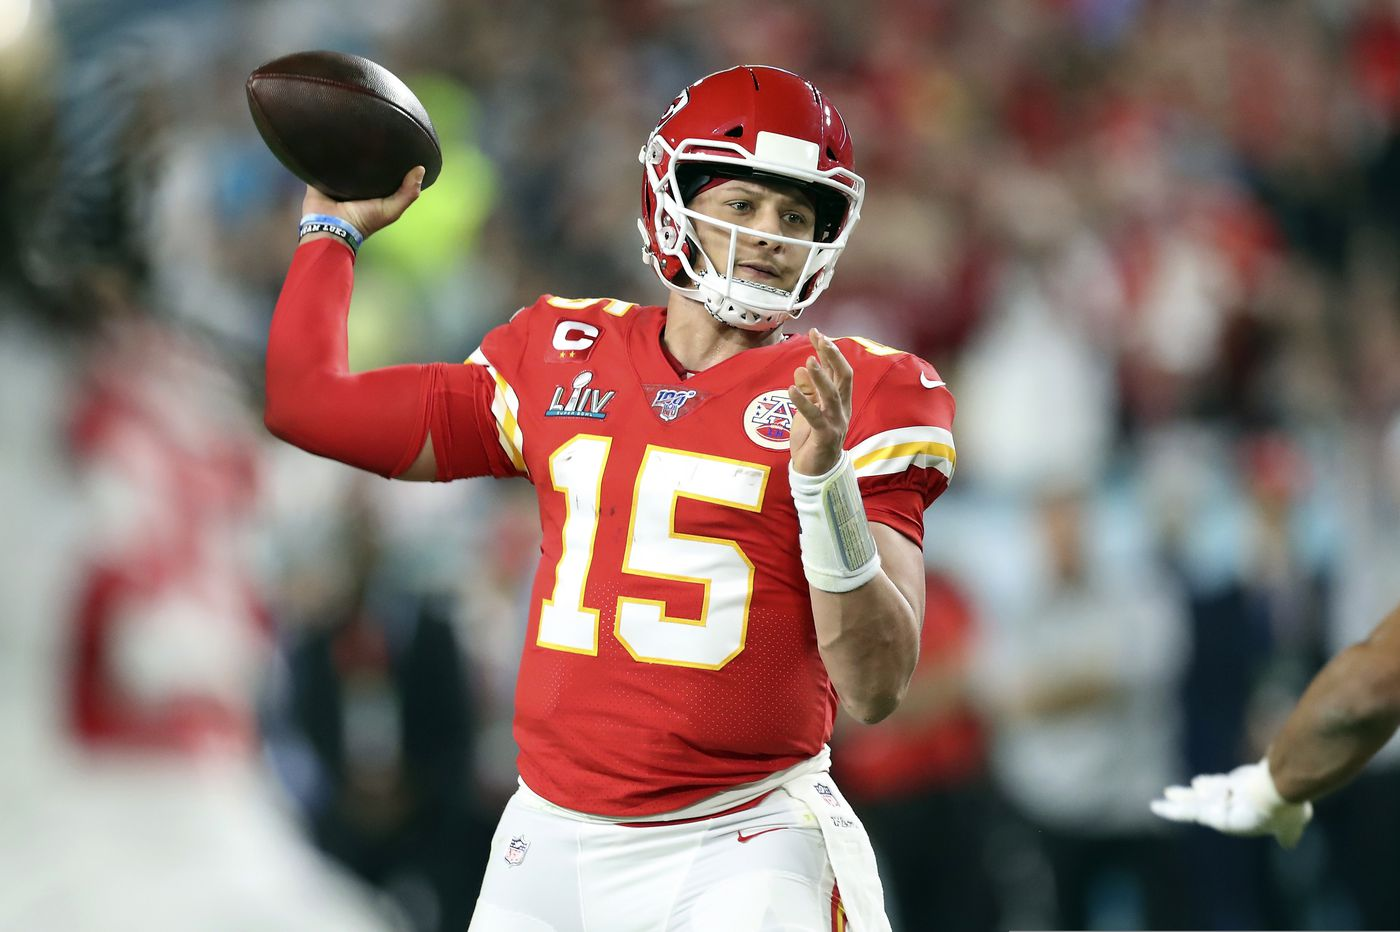 Patrick Mahomes answers to snub on NFL top 100 list, Iowa football under fire for racial bias and bullying, and other sports news